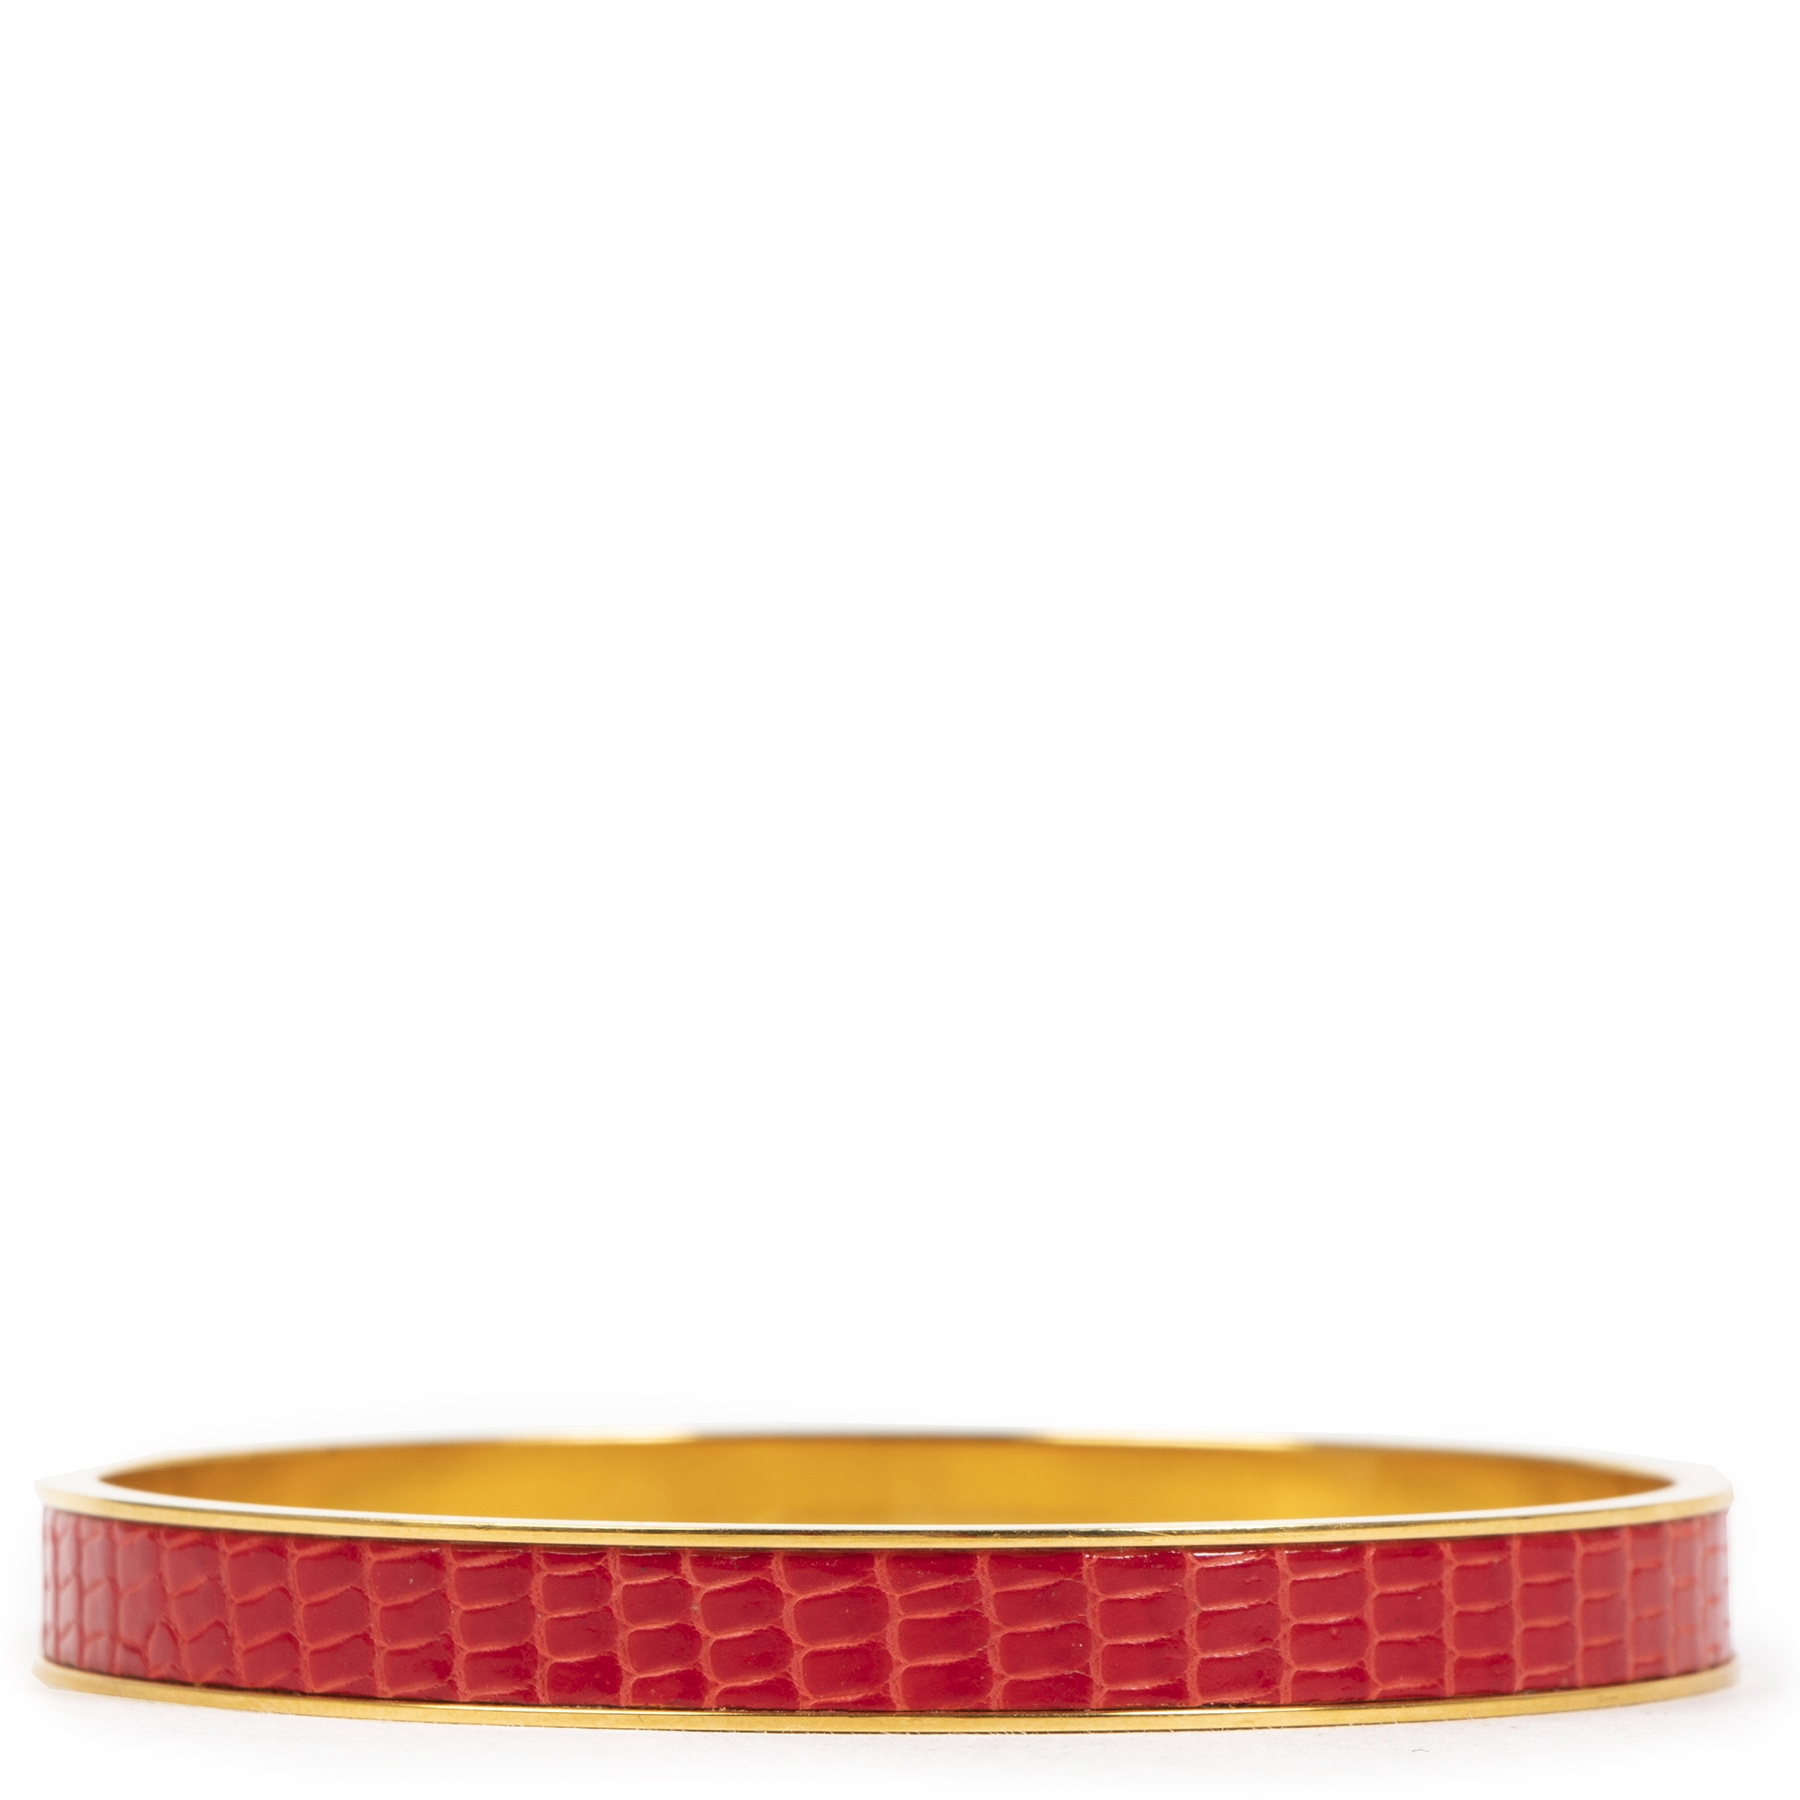 Authentieke tweedehands vintage Hermès Kelly Crocodile Bangle koop online webshop LabelLOV